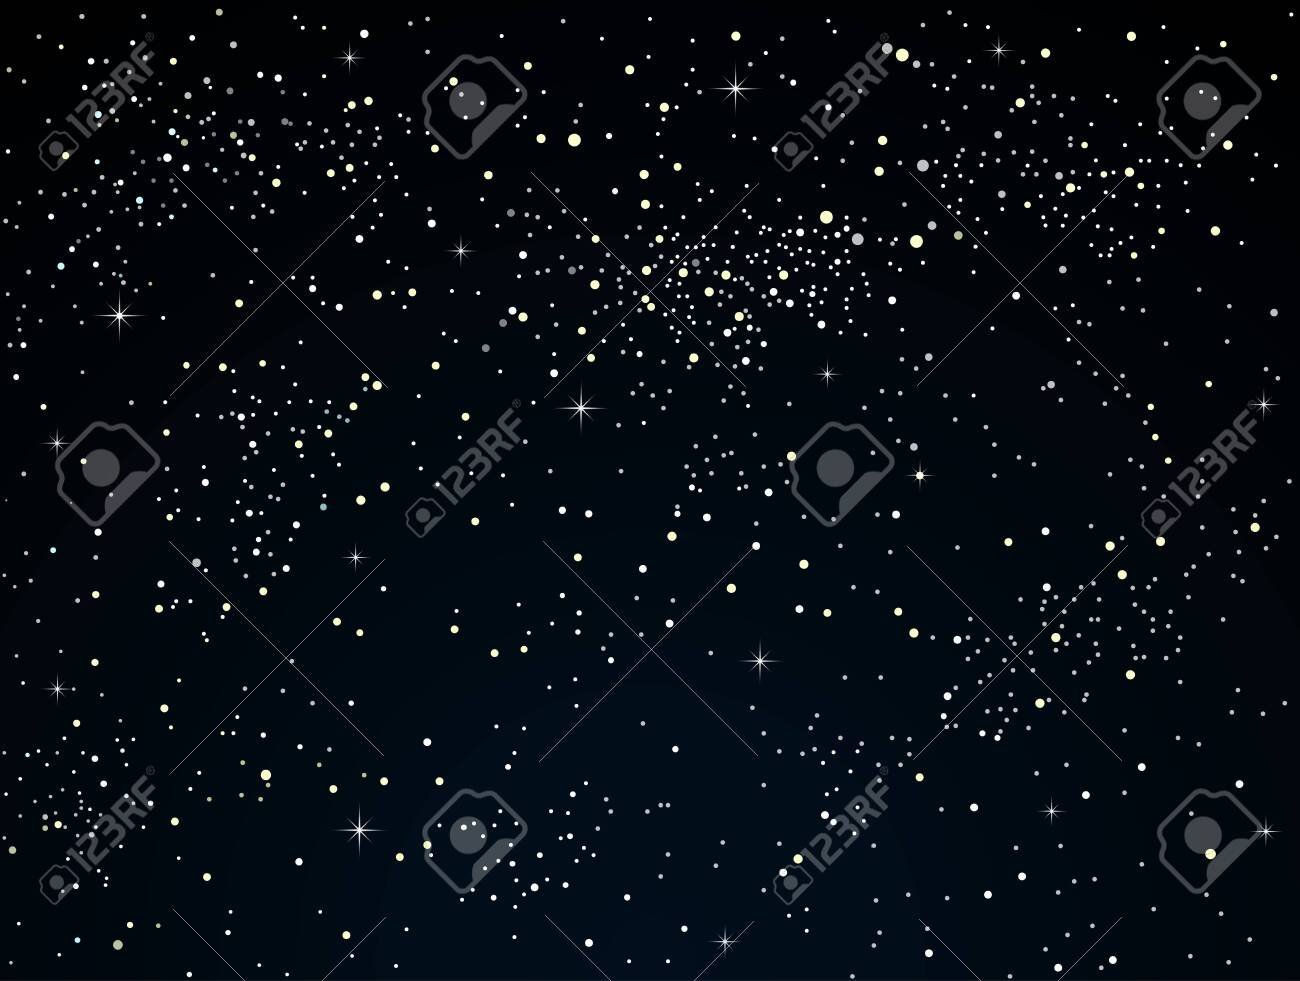 Starry night sky with dark glow. Shining stars on the dark sky. Outdoor night. Modern nature banner, background, card, backdrop. - 123617130